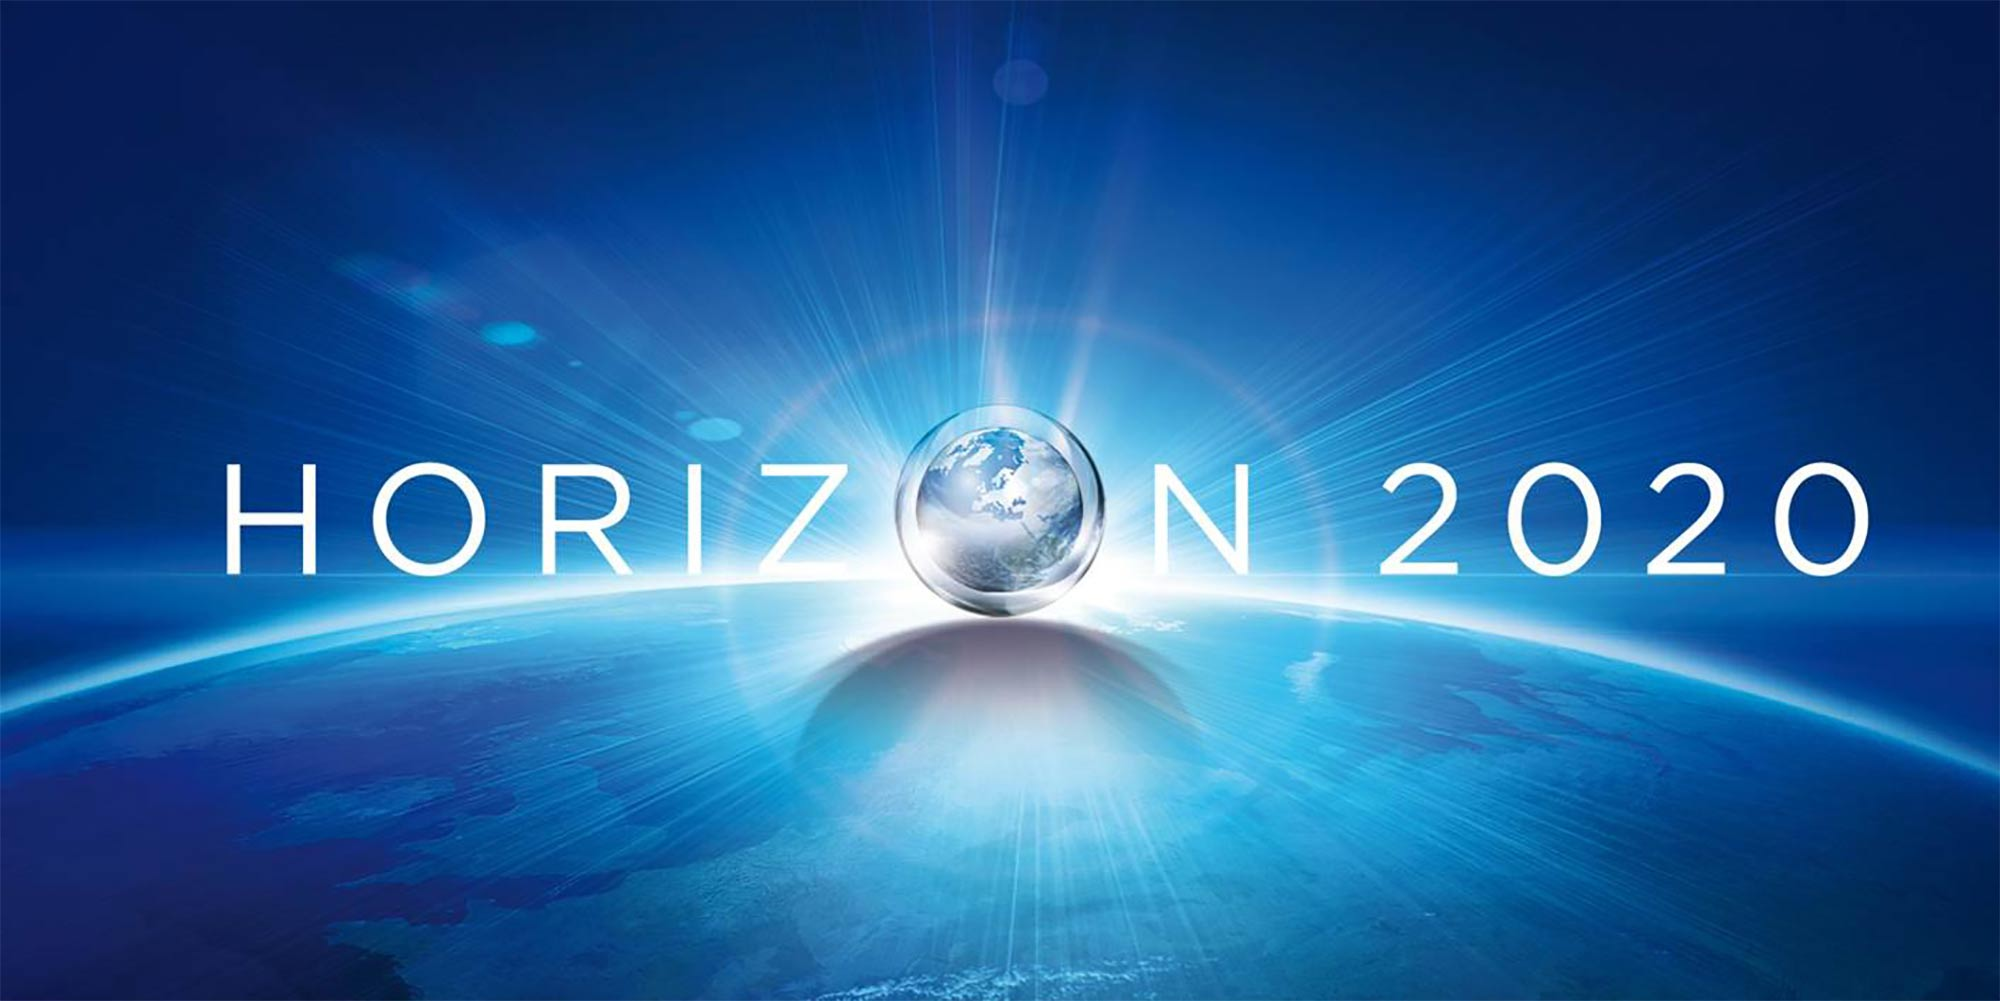 National Launch of Final €30 Billion Horizon 2020 Work Programme Takes Place at University College Dublin